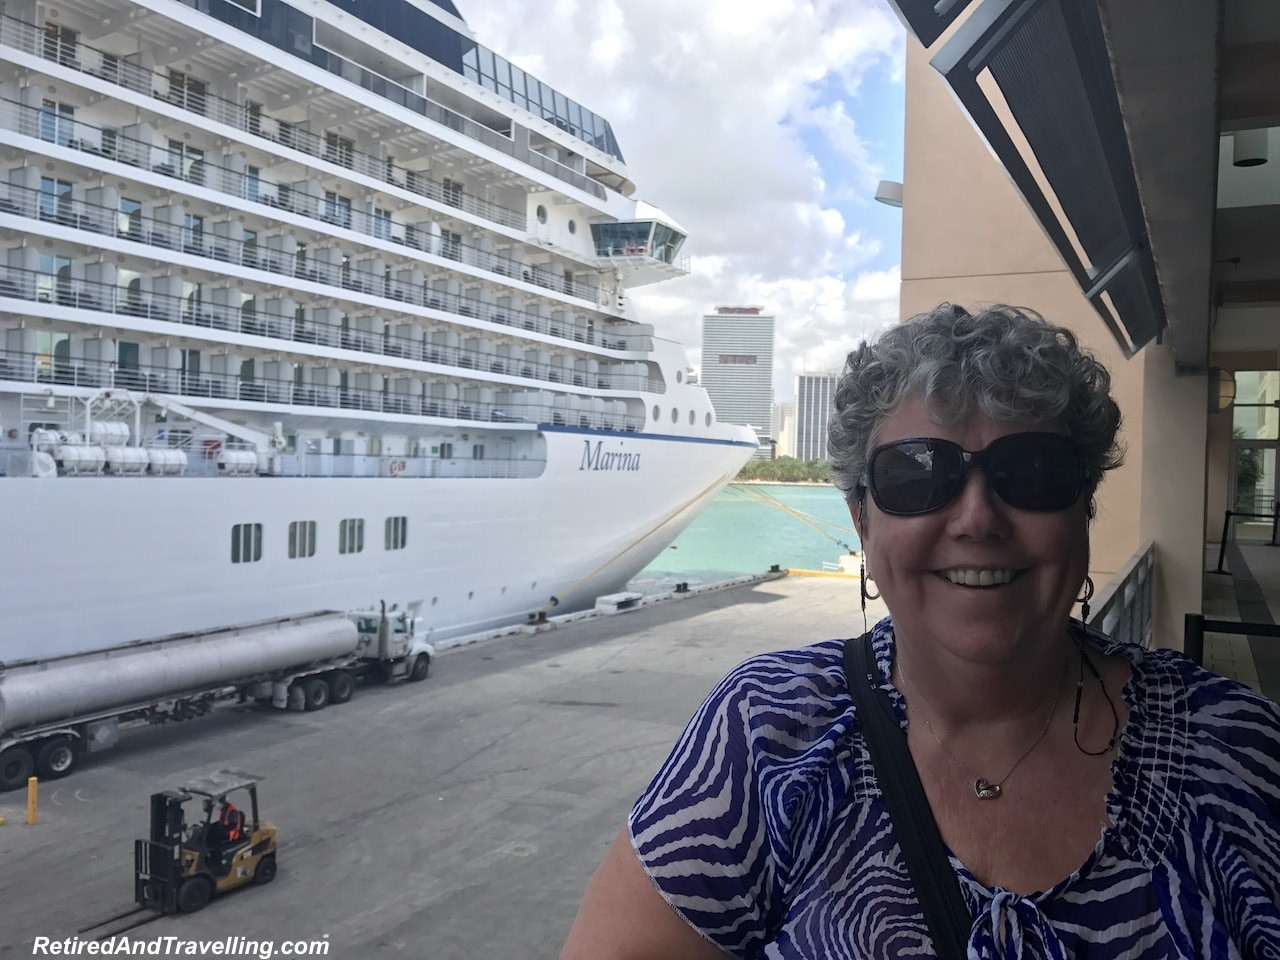 Boarding Oceania Cruises Ship in Miami.jpg